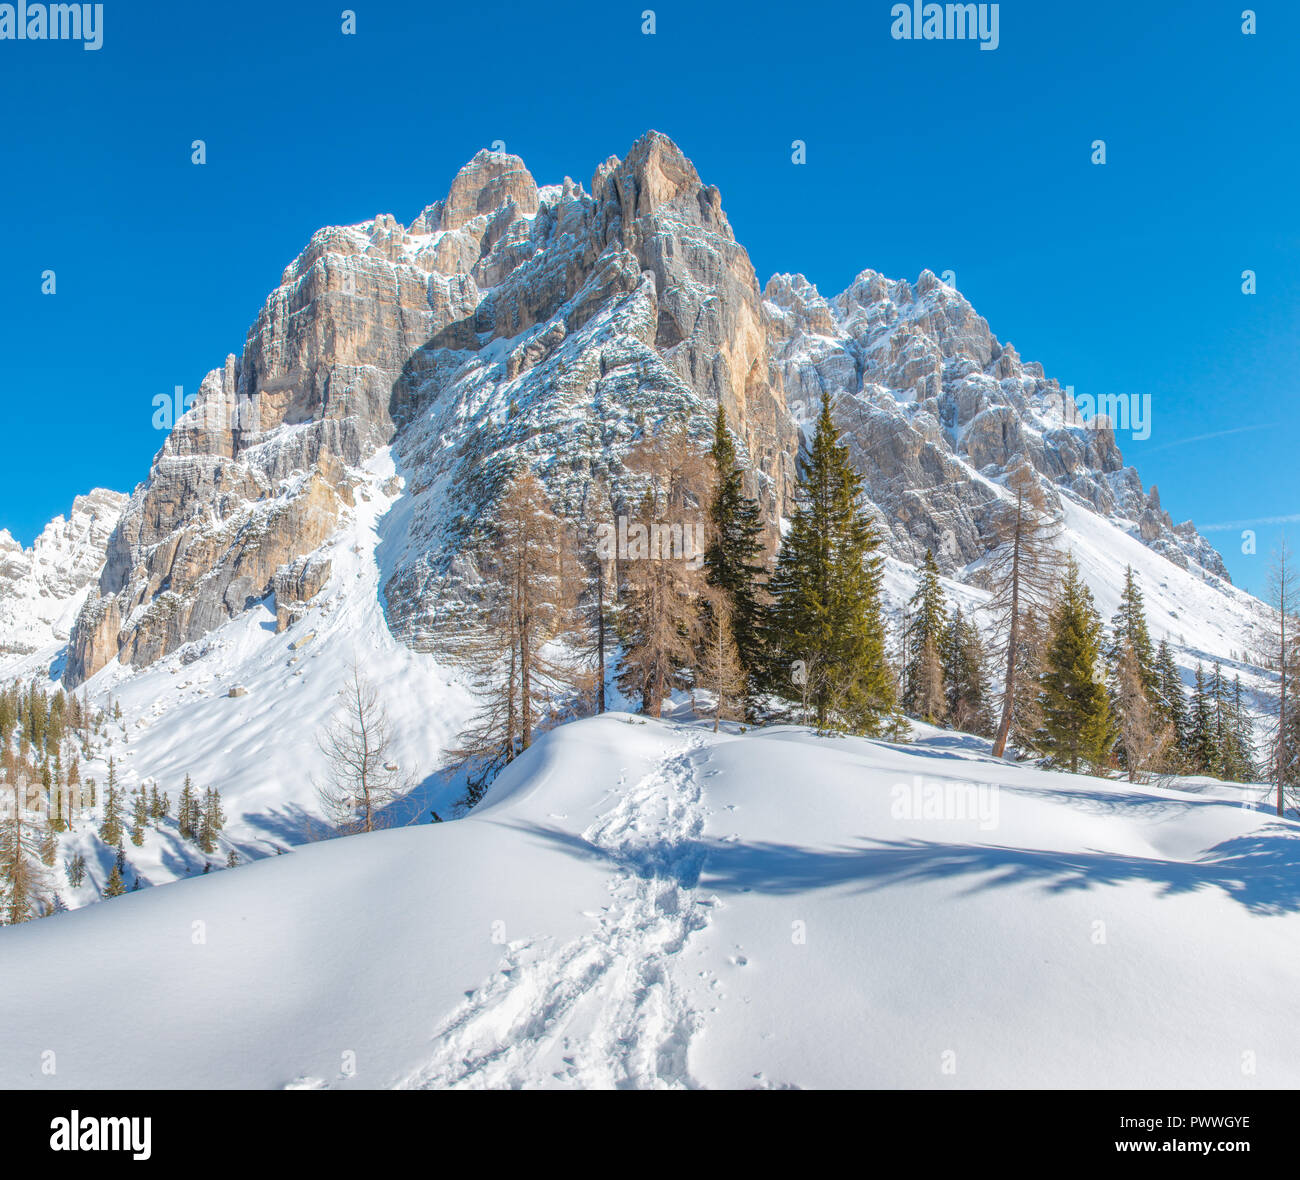 Imposing mountain wall in the Italian Alps, snowcapped mountains, fresh tracks in the snow leading to the forest. Winter snowshoeing. - Stock Image